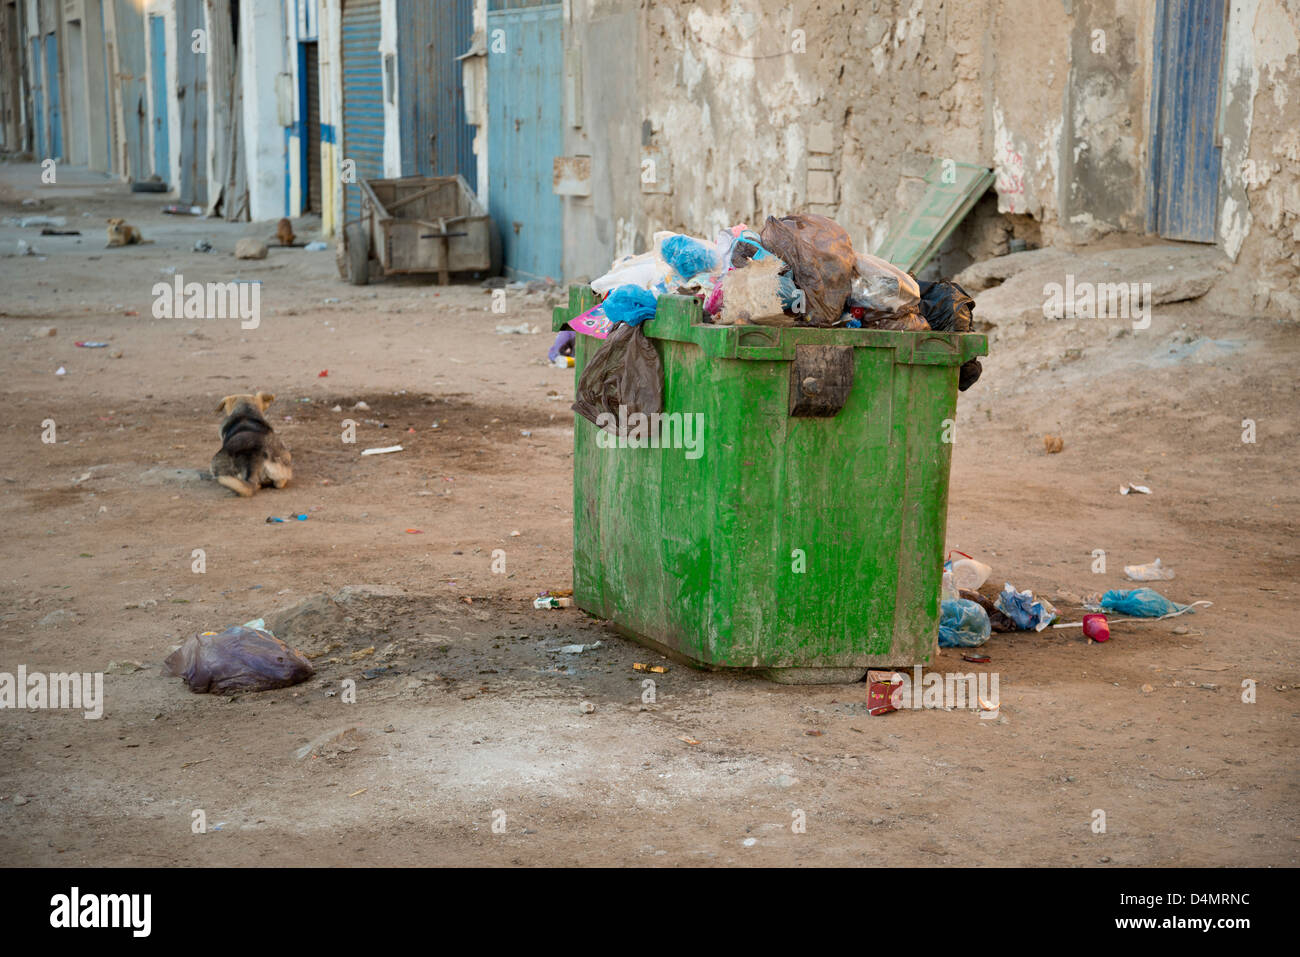 stray dogs and rubbish piled up in bin - Stock Image